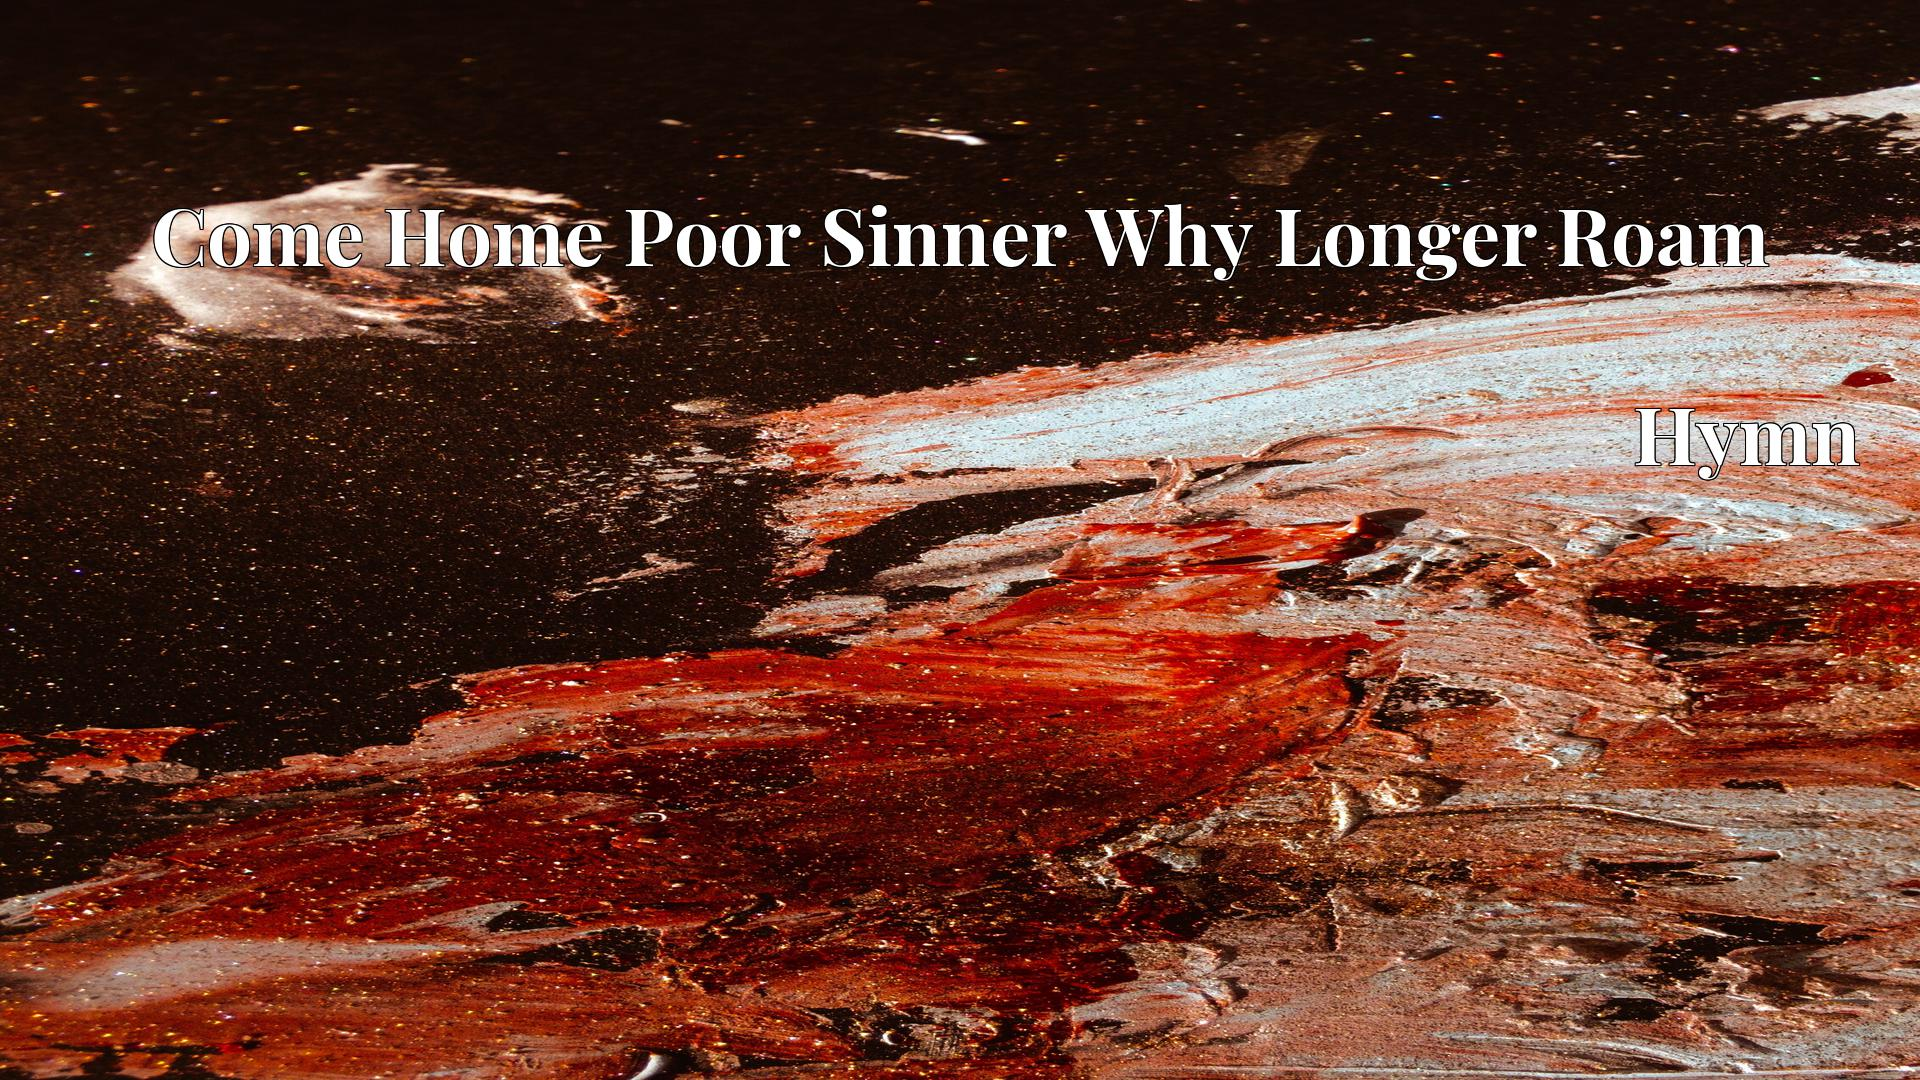 Come Home Poor Sinner Why Longer Roam - Hymn